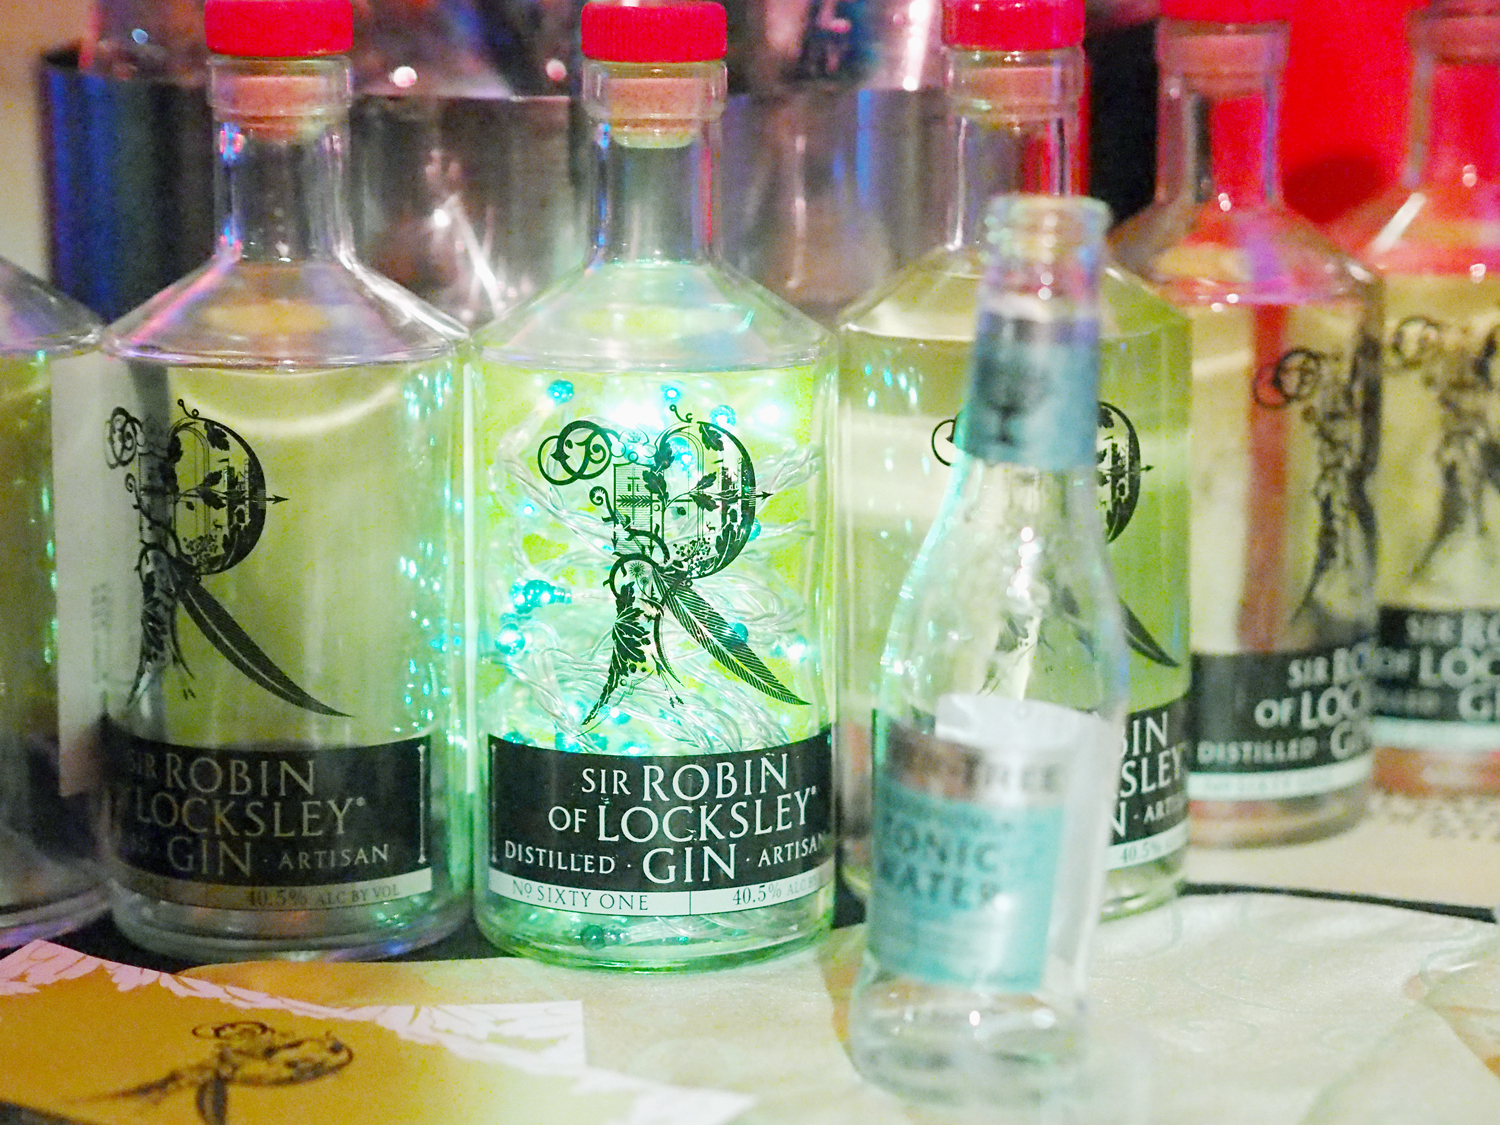 The Gin Festival Leicester